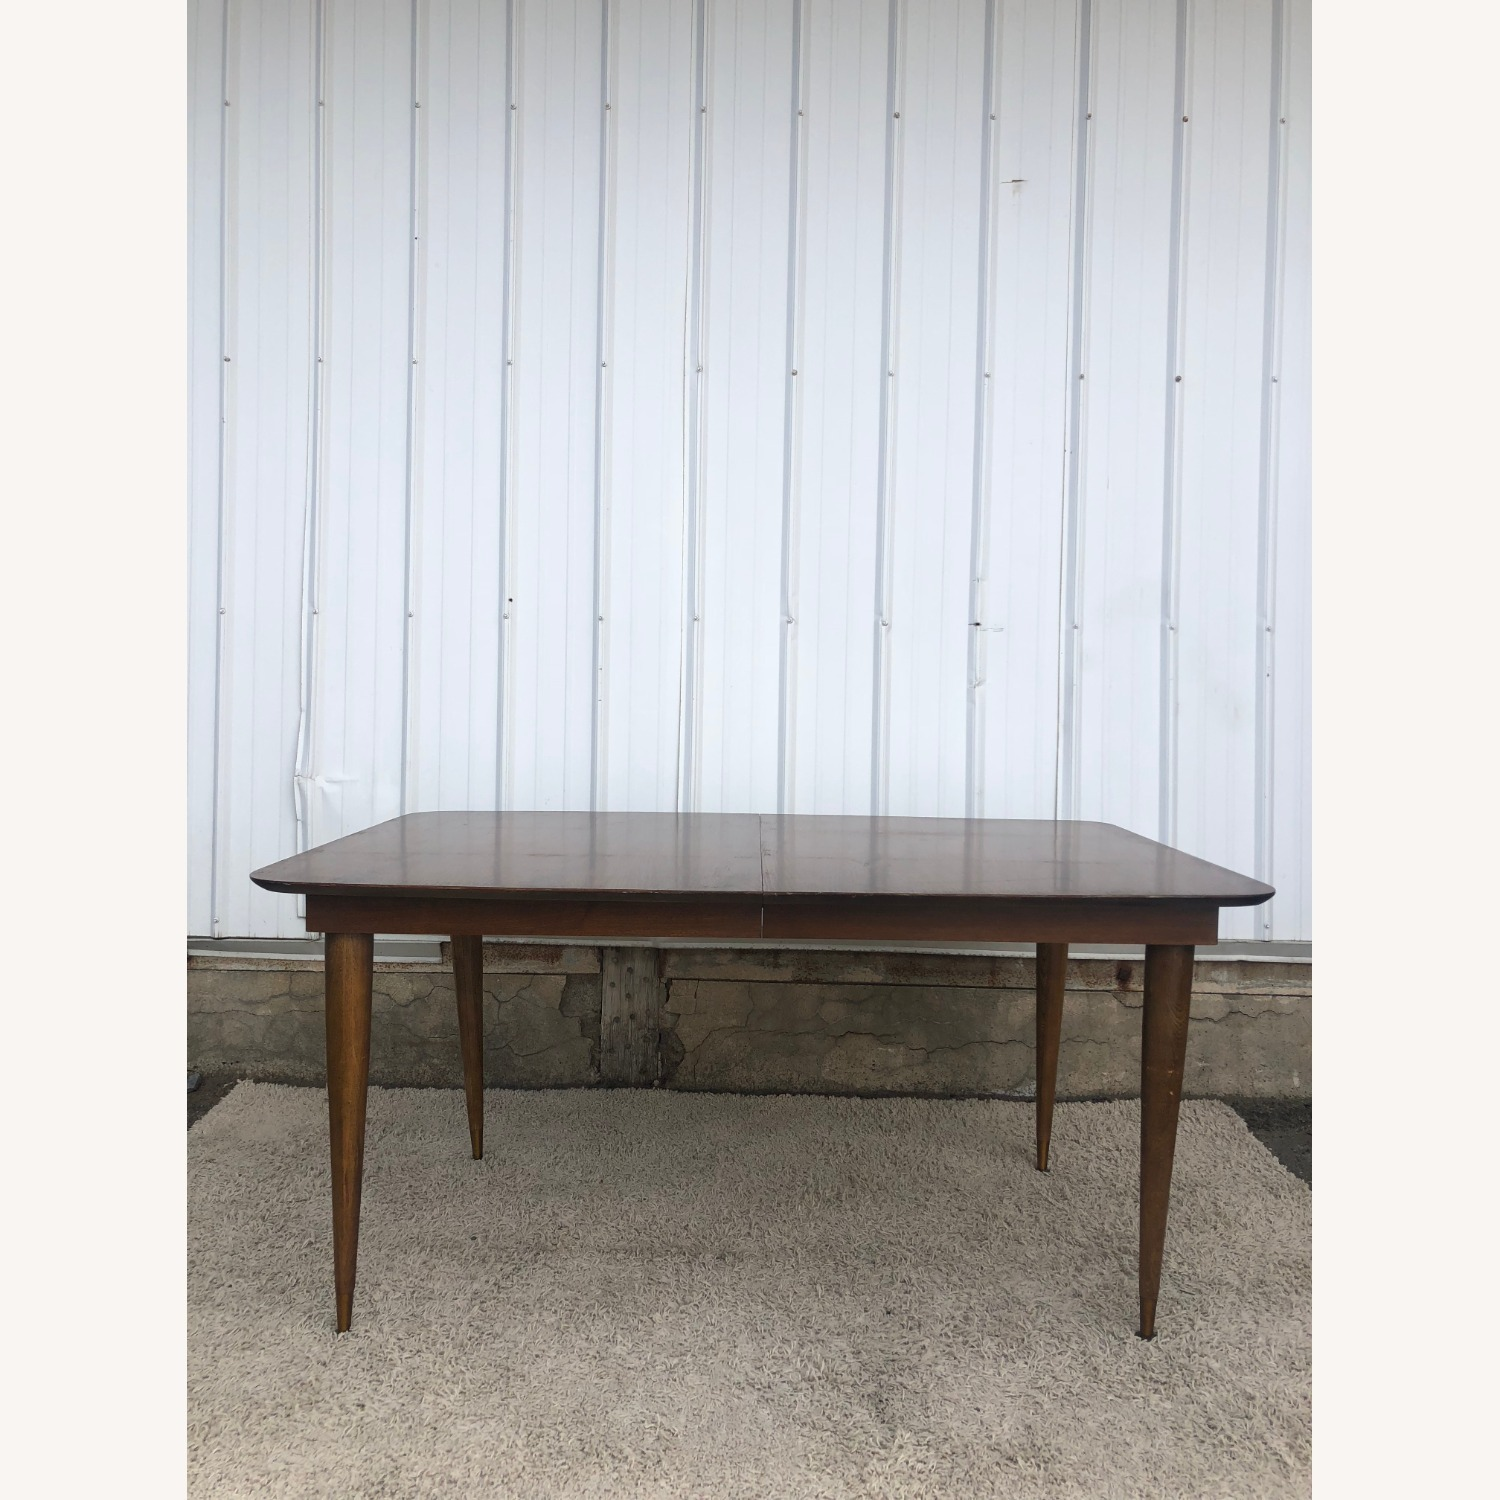 Mid Century Walnut Dining Table with One Leaf - image-7